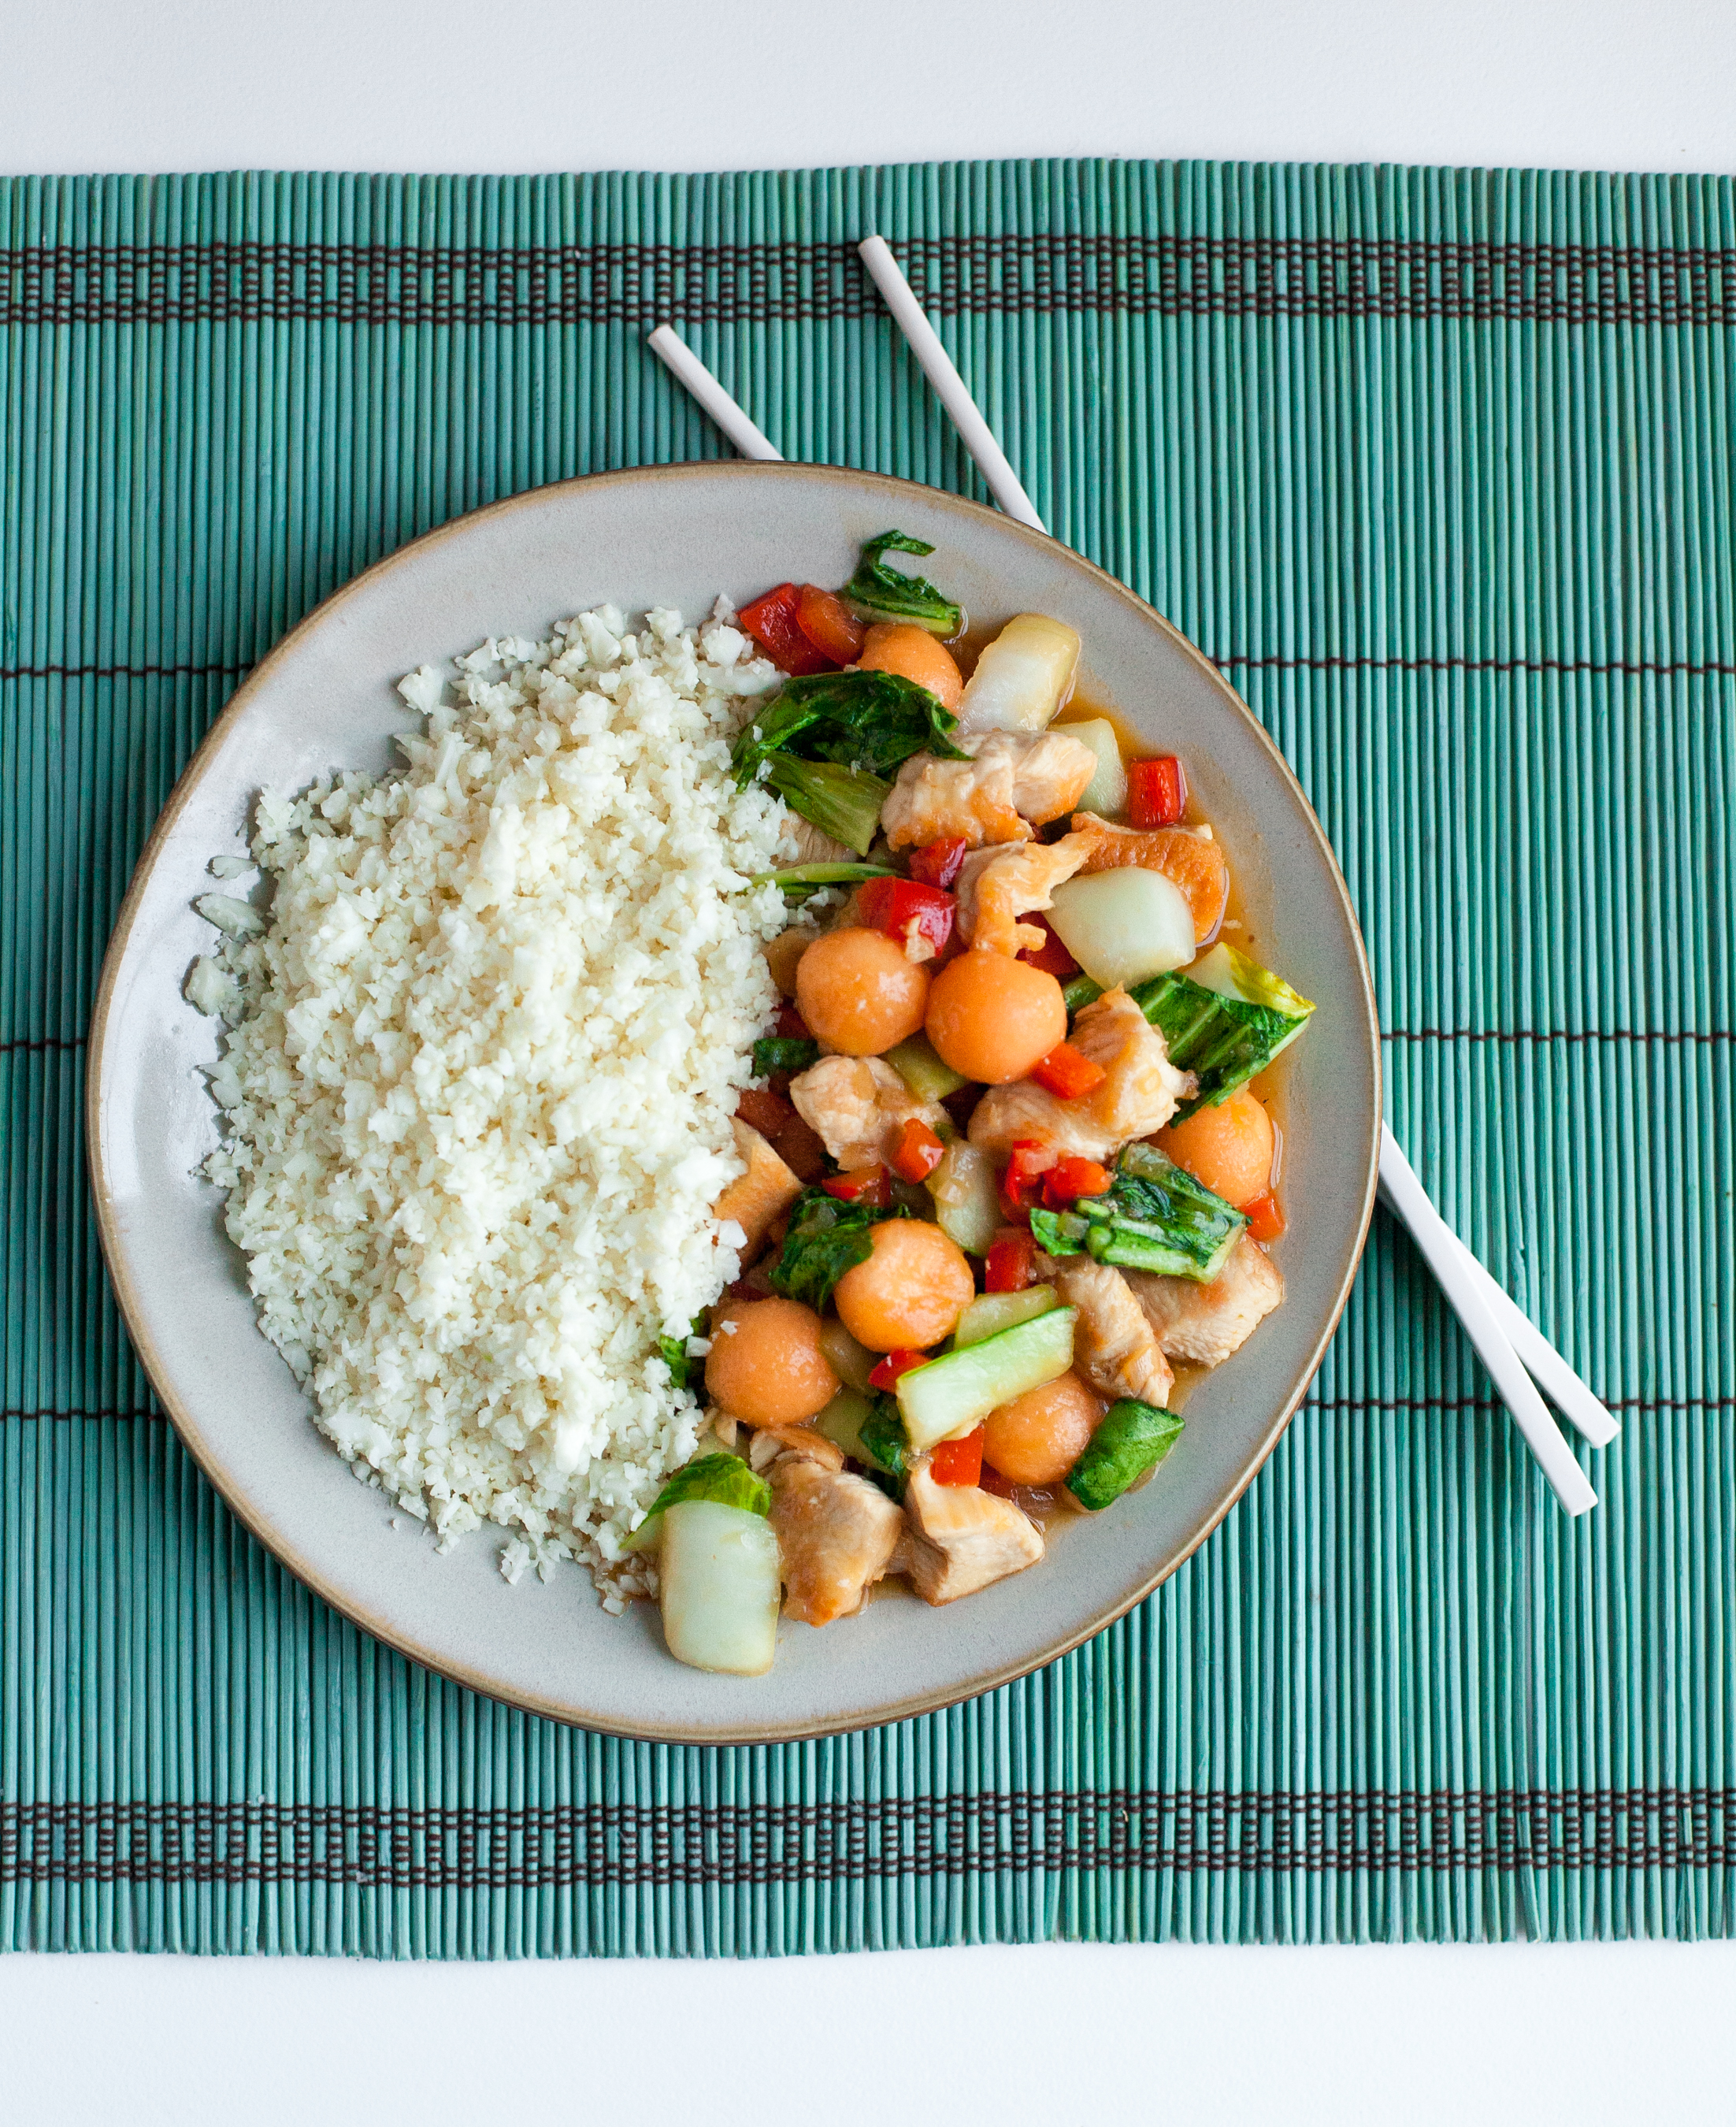 Chicken and Cantaloupe Stir-fry from Paleo Planet by Becky Winkler